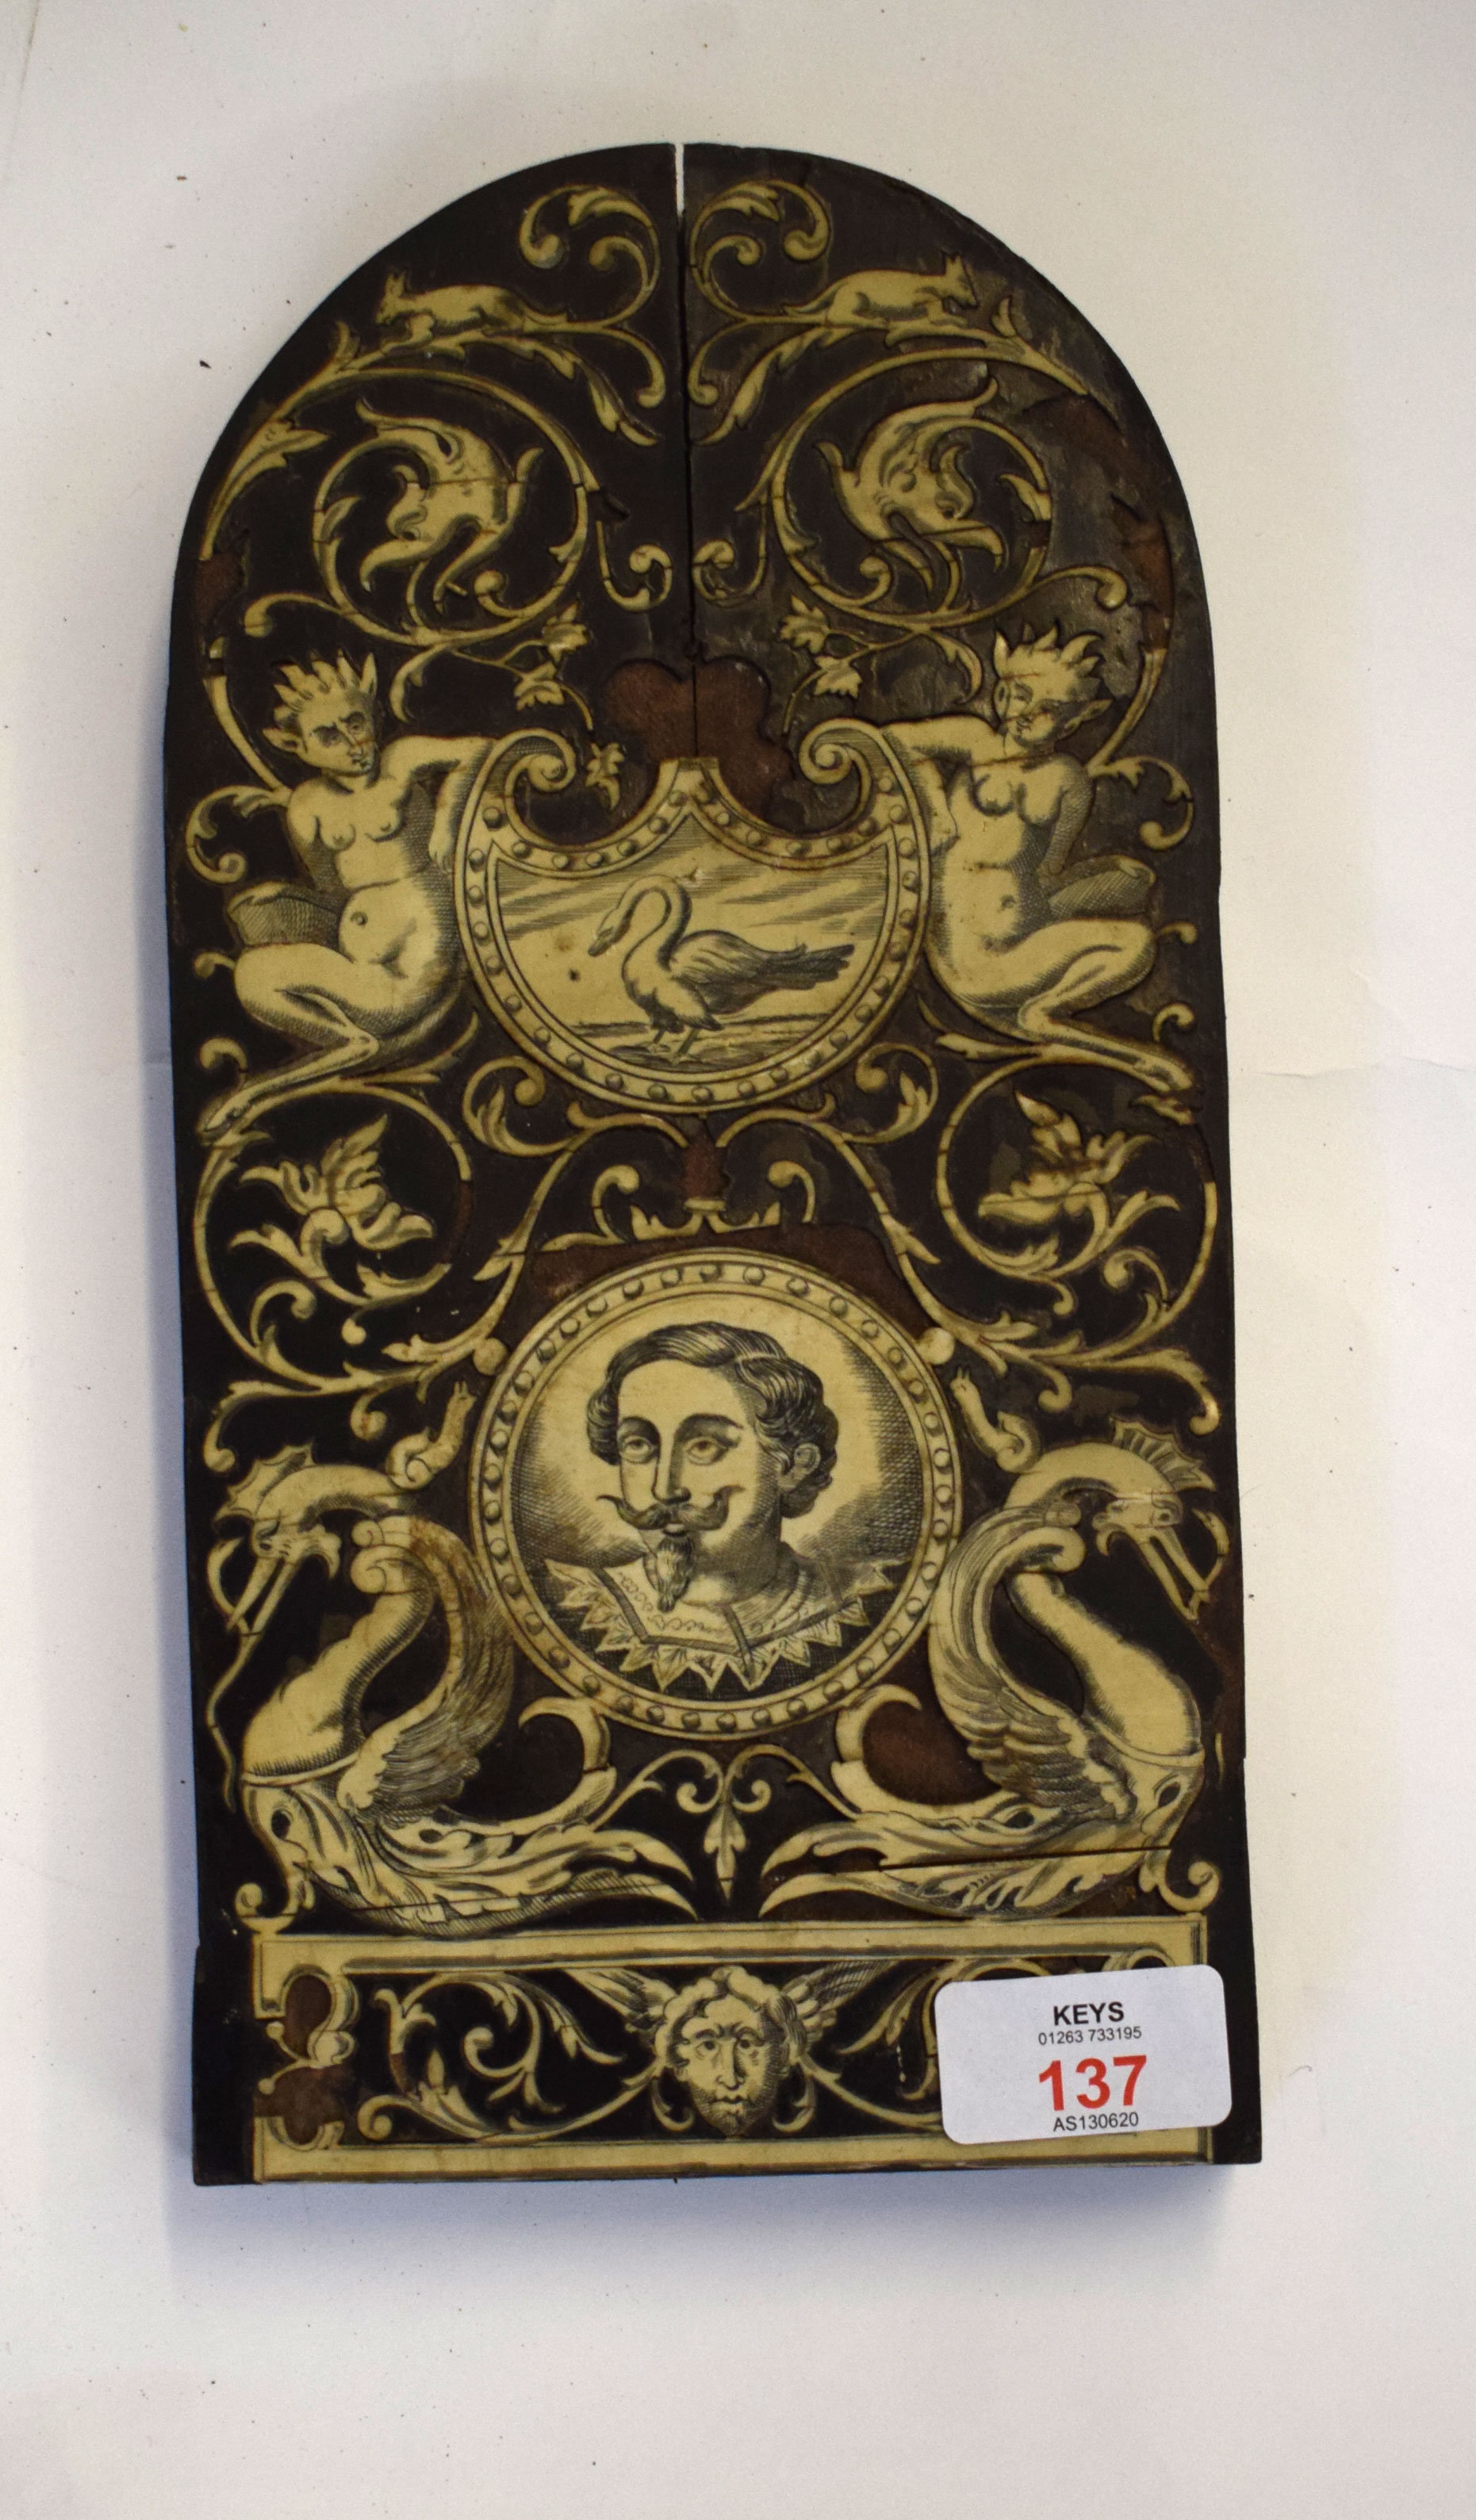 Lot 137 - Interesting wood and ivory inlay panel of elongated oval form, inlay of a portrait, and a swan